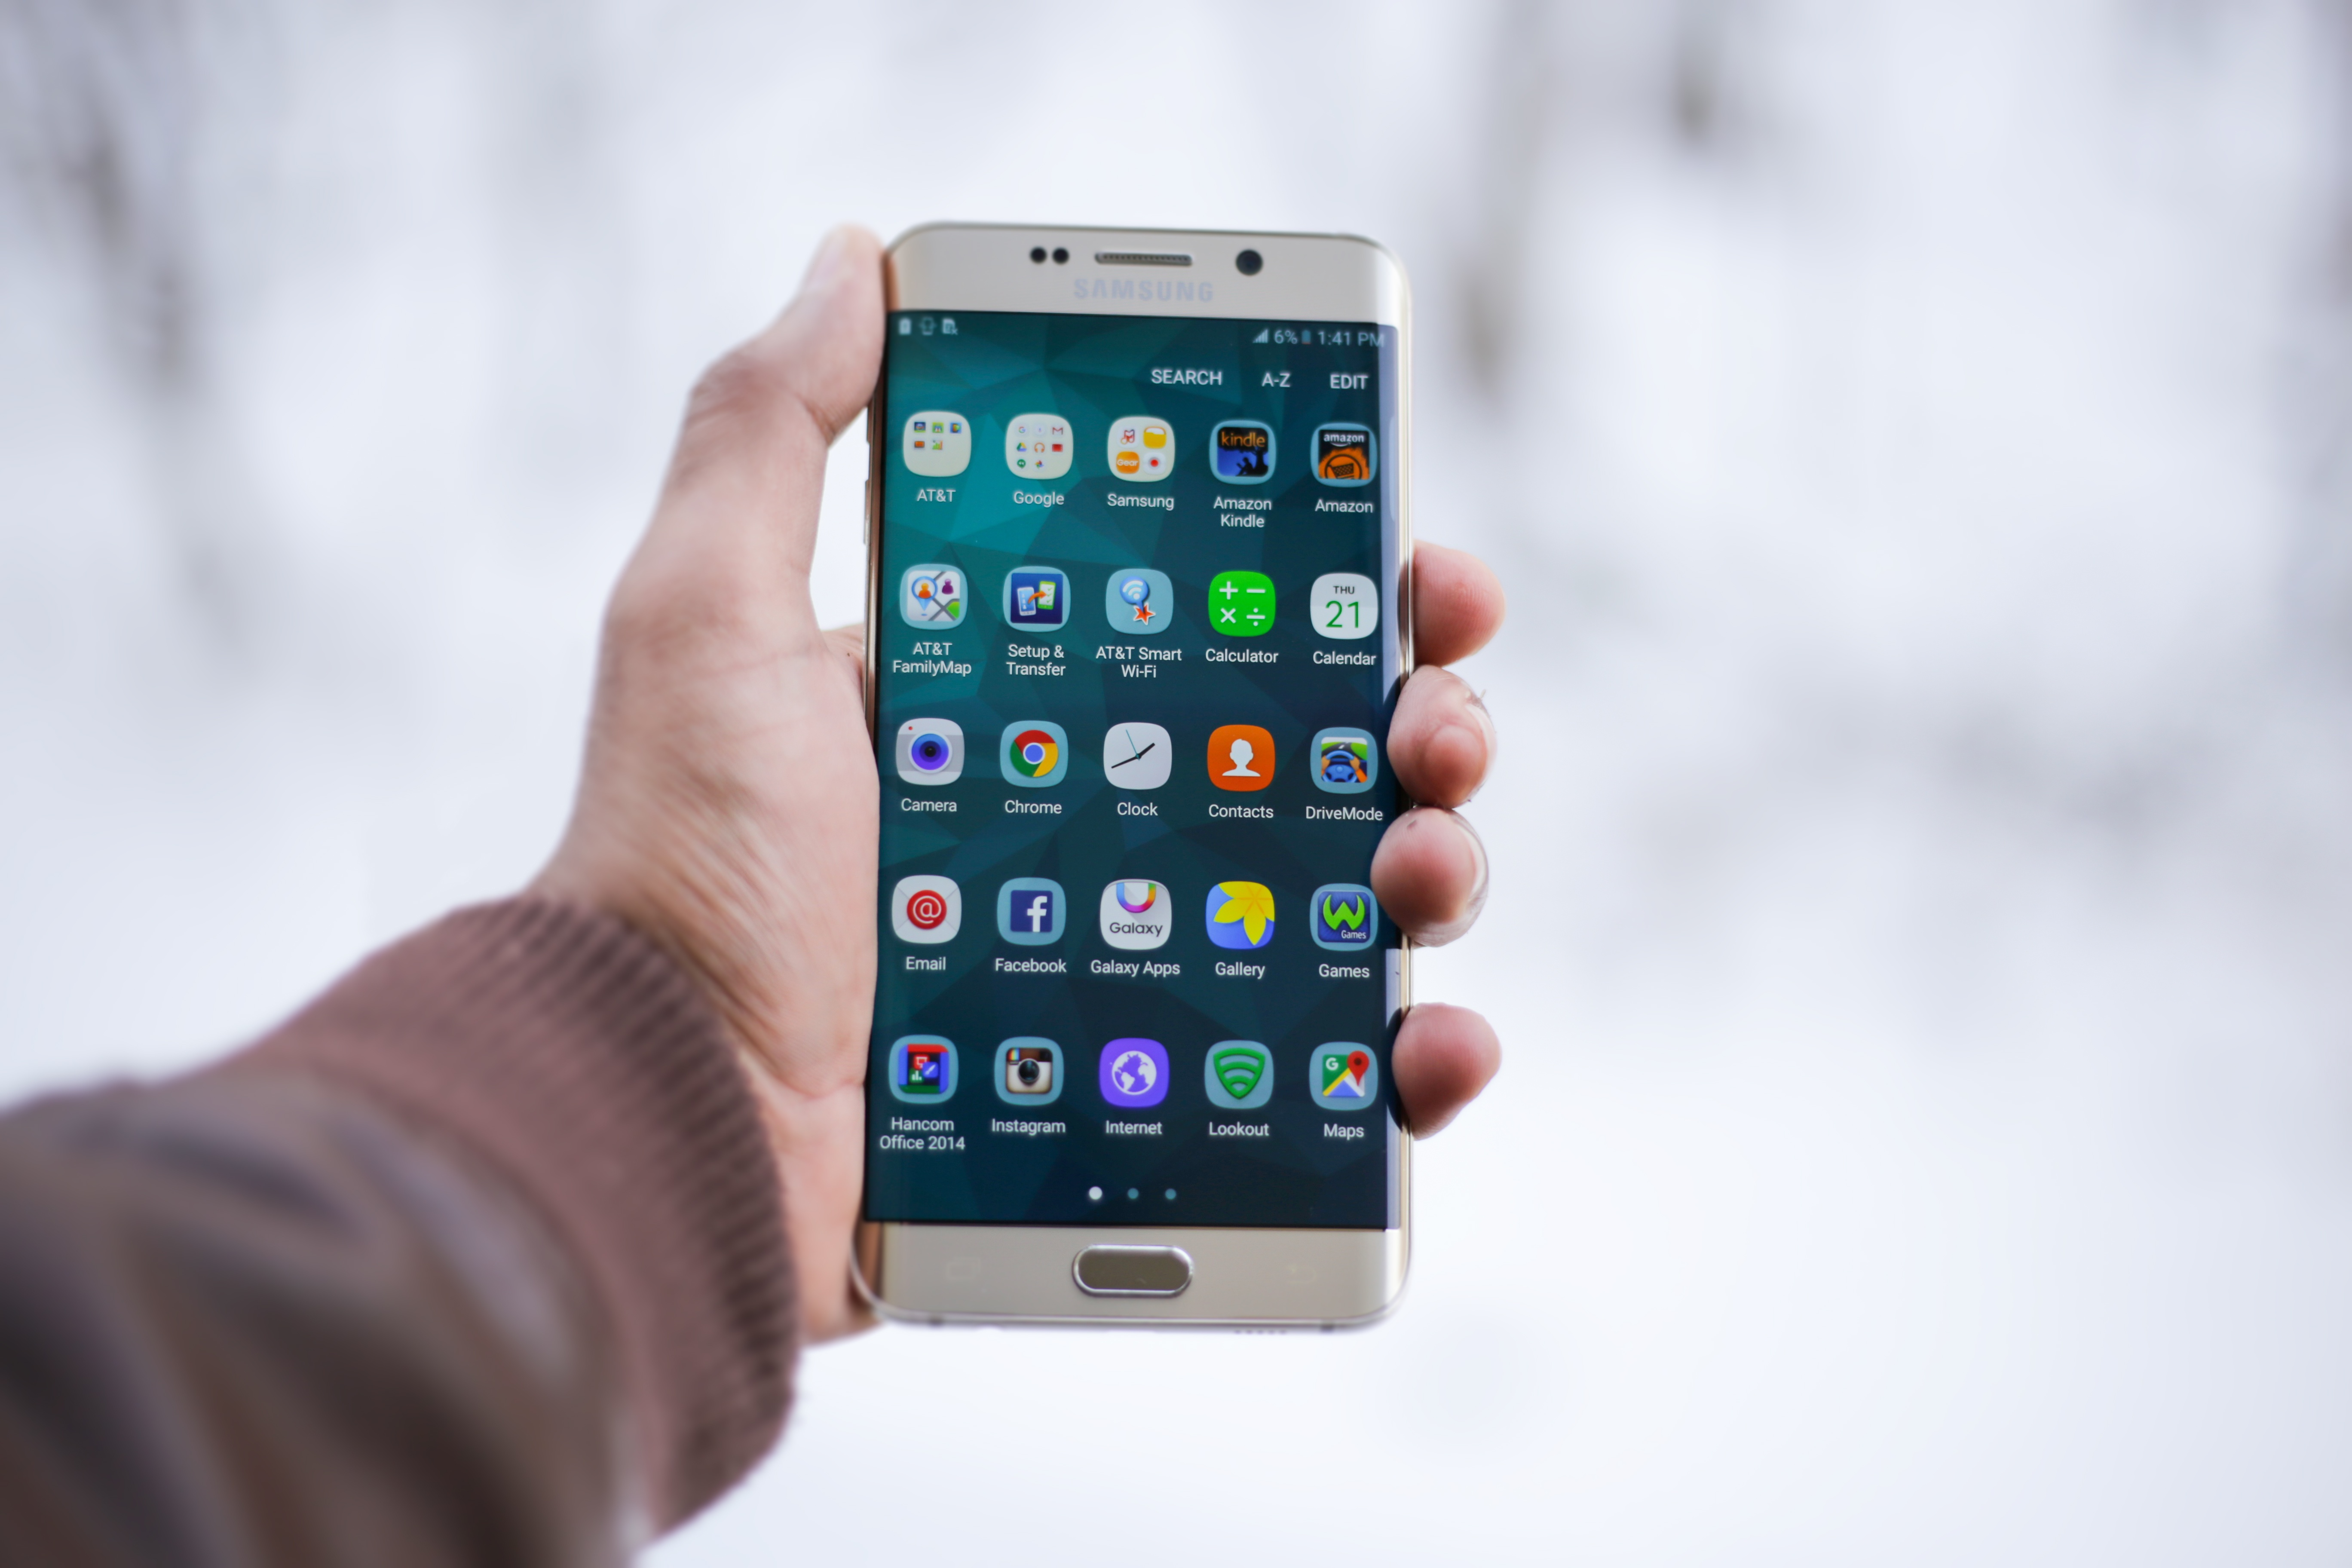 A person holding up a smartphone